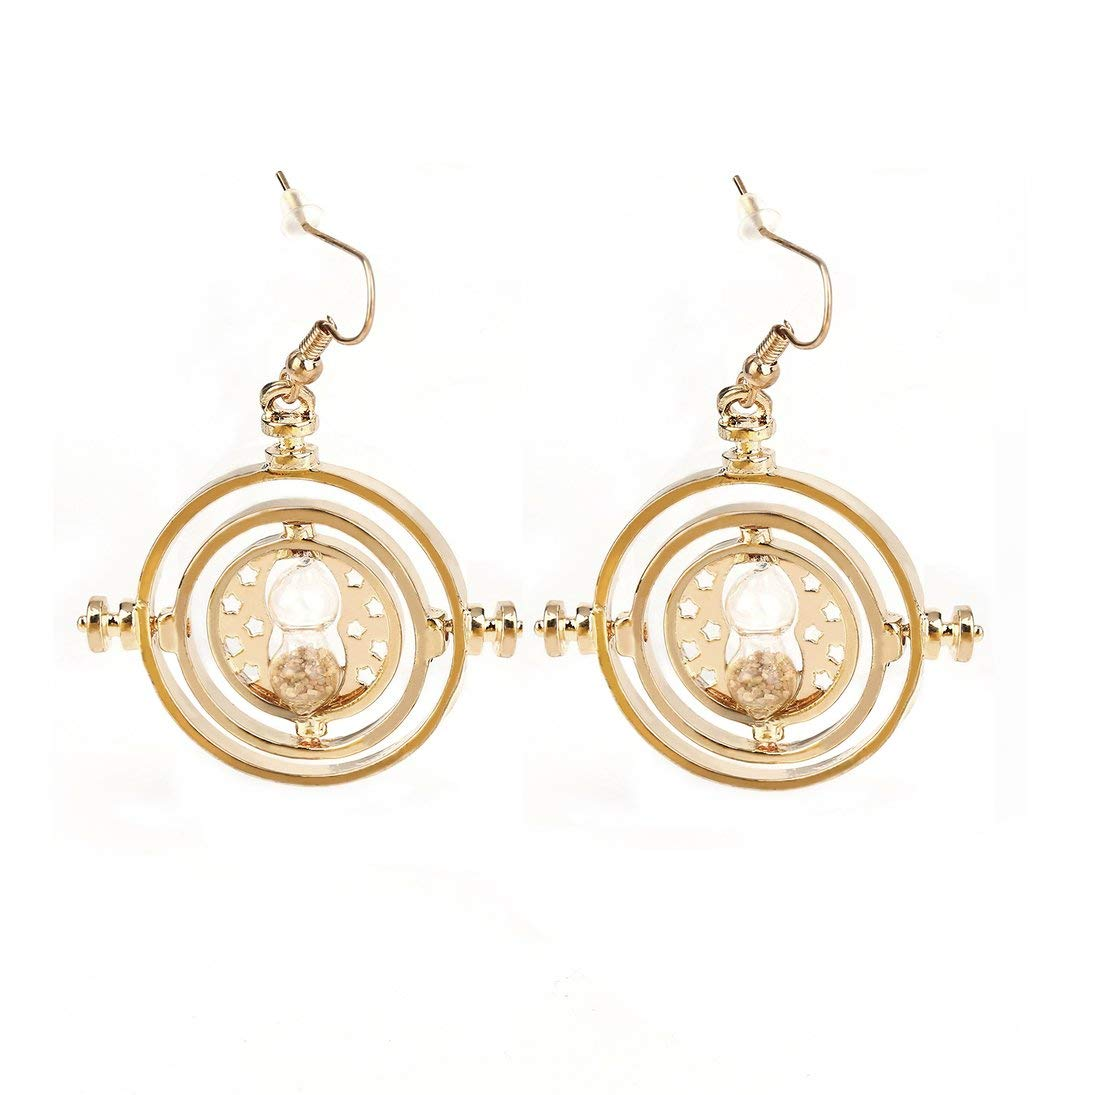 Baynne New Rotating Time-Turner Spins Hourglass Dangle Earrings Pendant Fashion Wedding Accessories